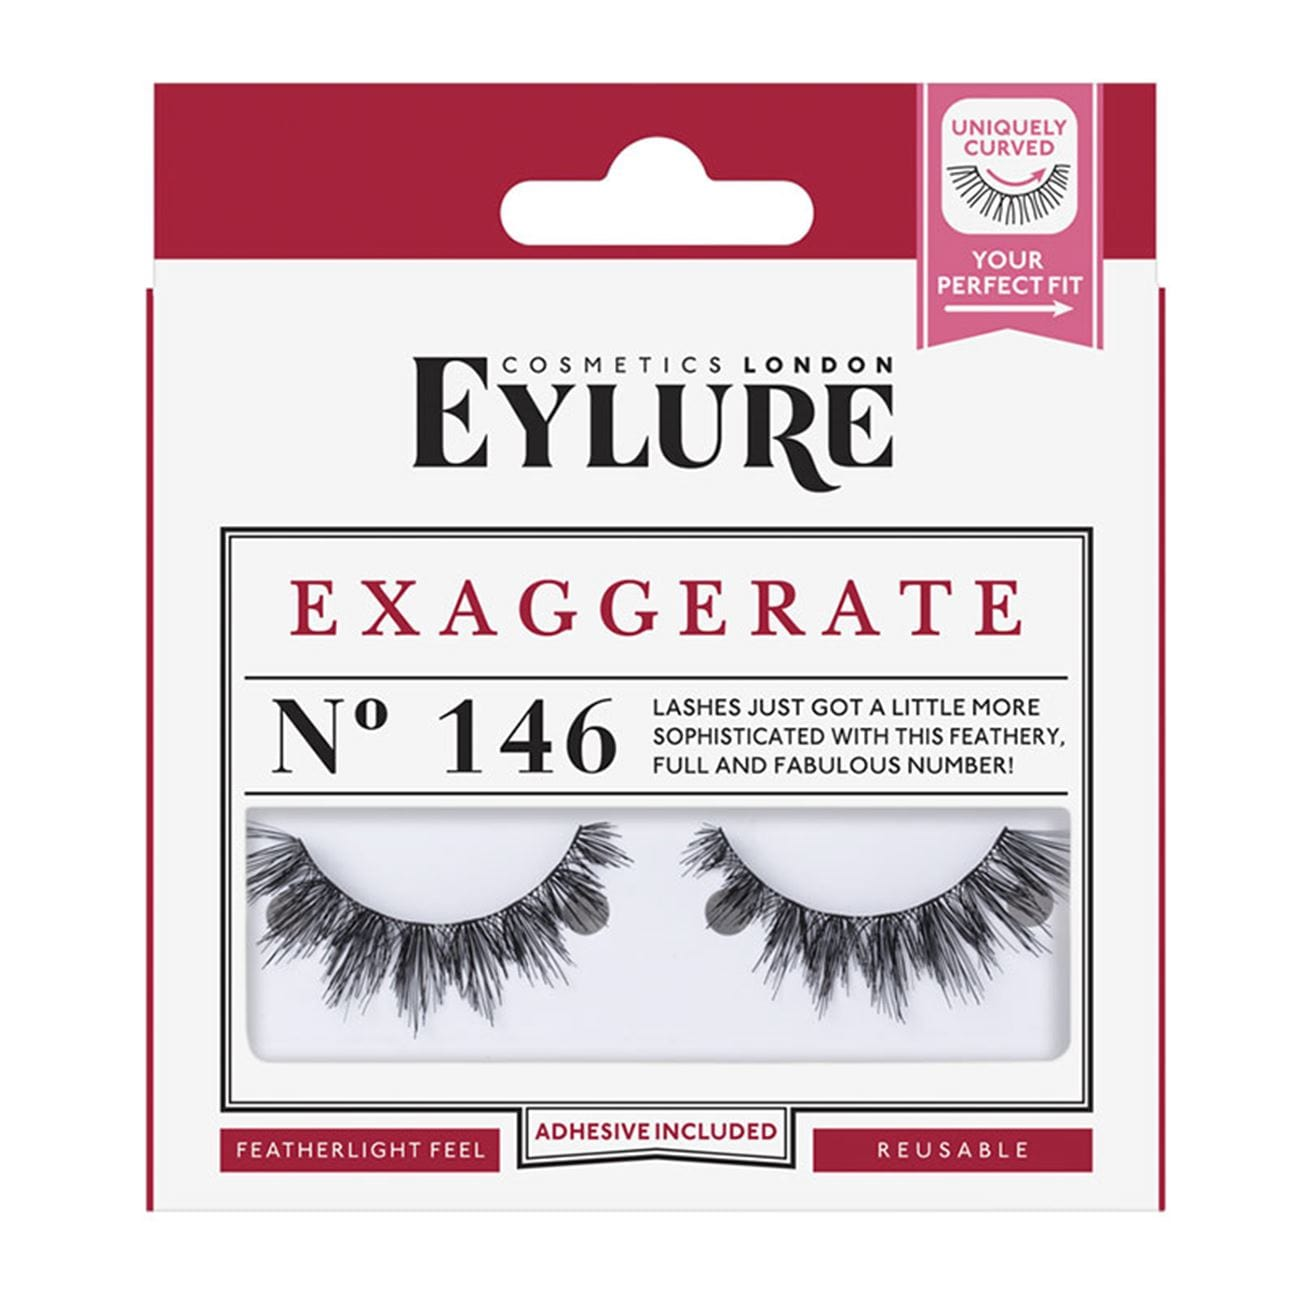 Exaggerate No. 146 Lashes